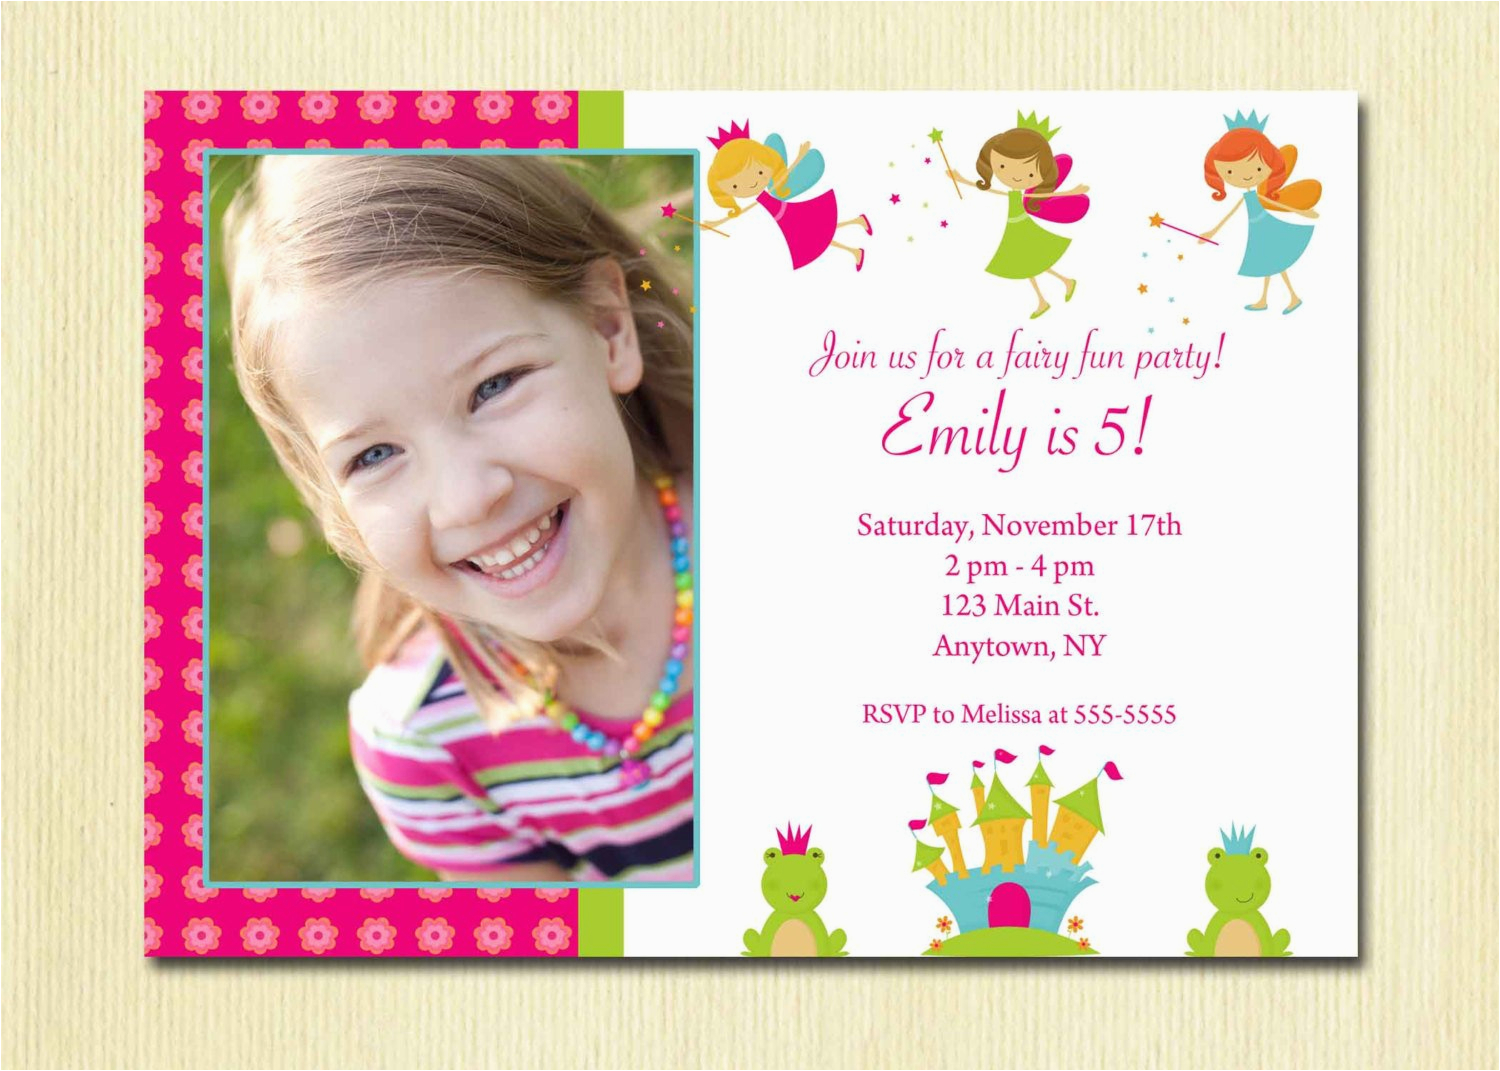 Birthday Invitation Wording For 3 Year Old Boy Fairy Princess Party Girls Diy Photo